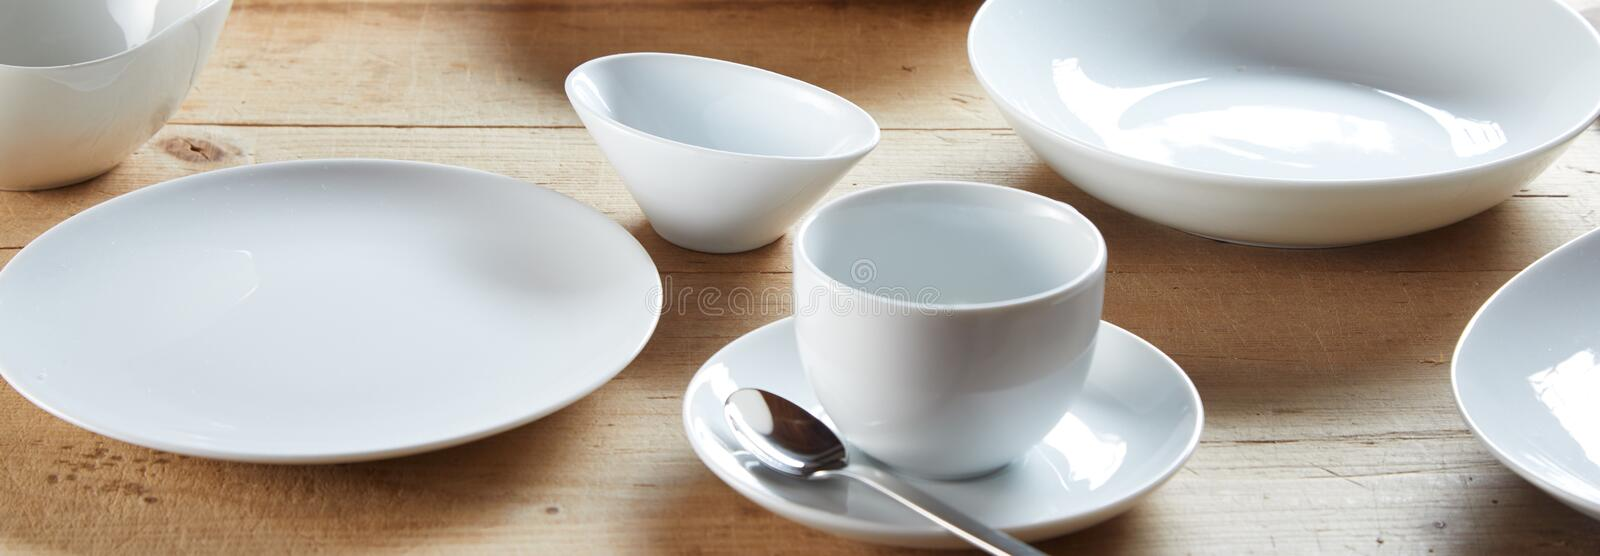 White cup on saucer and ceramic bowls stock images